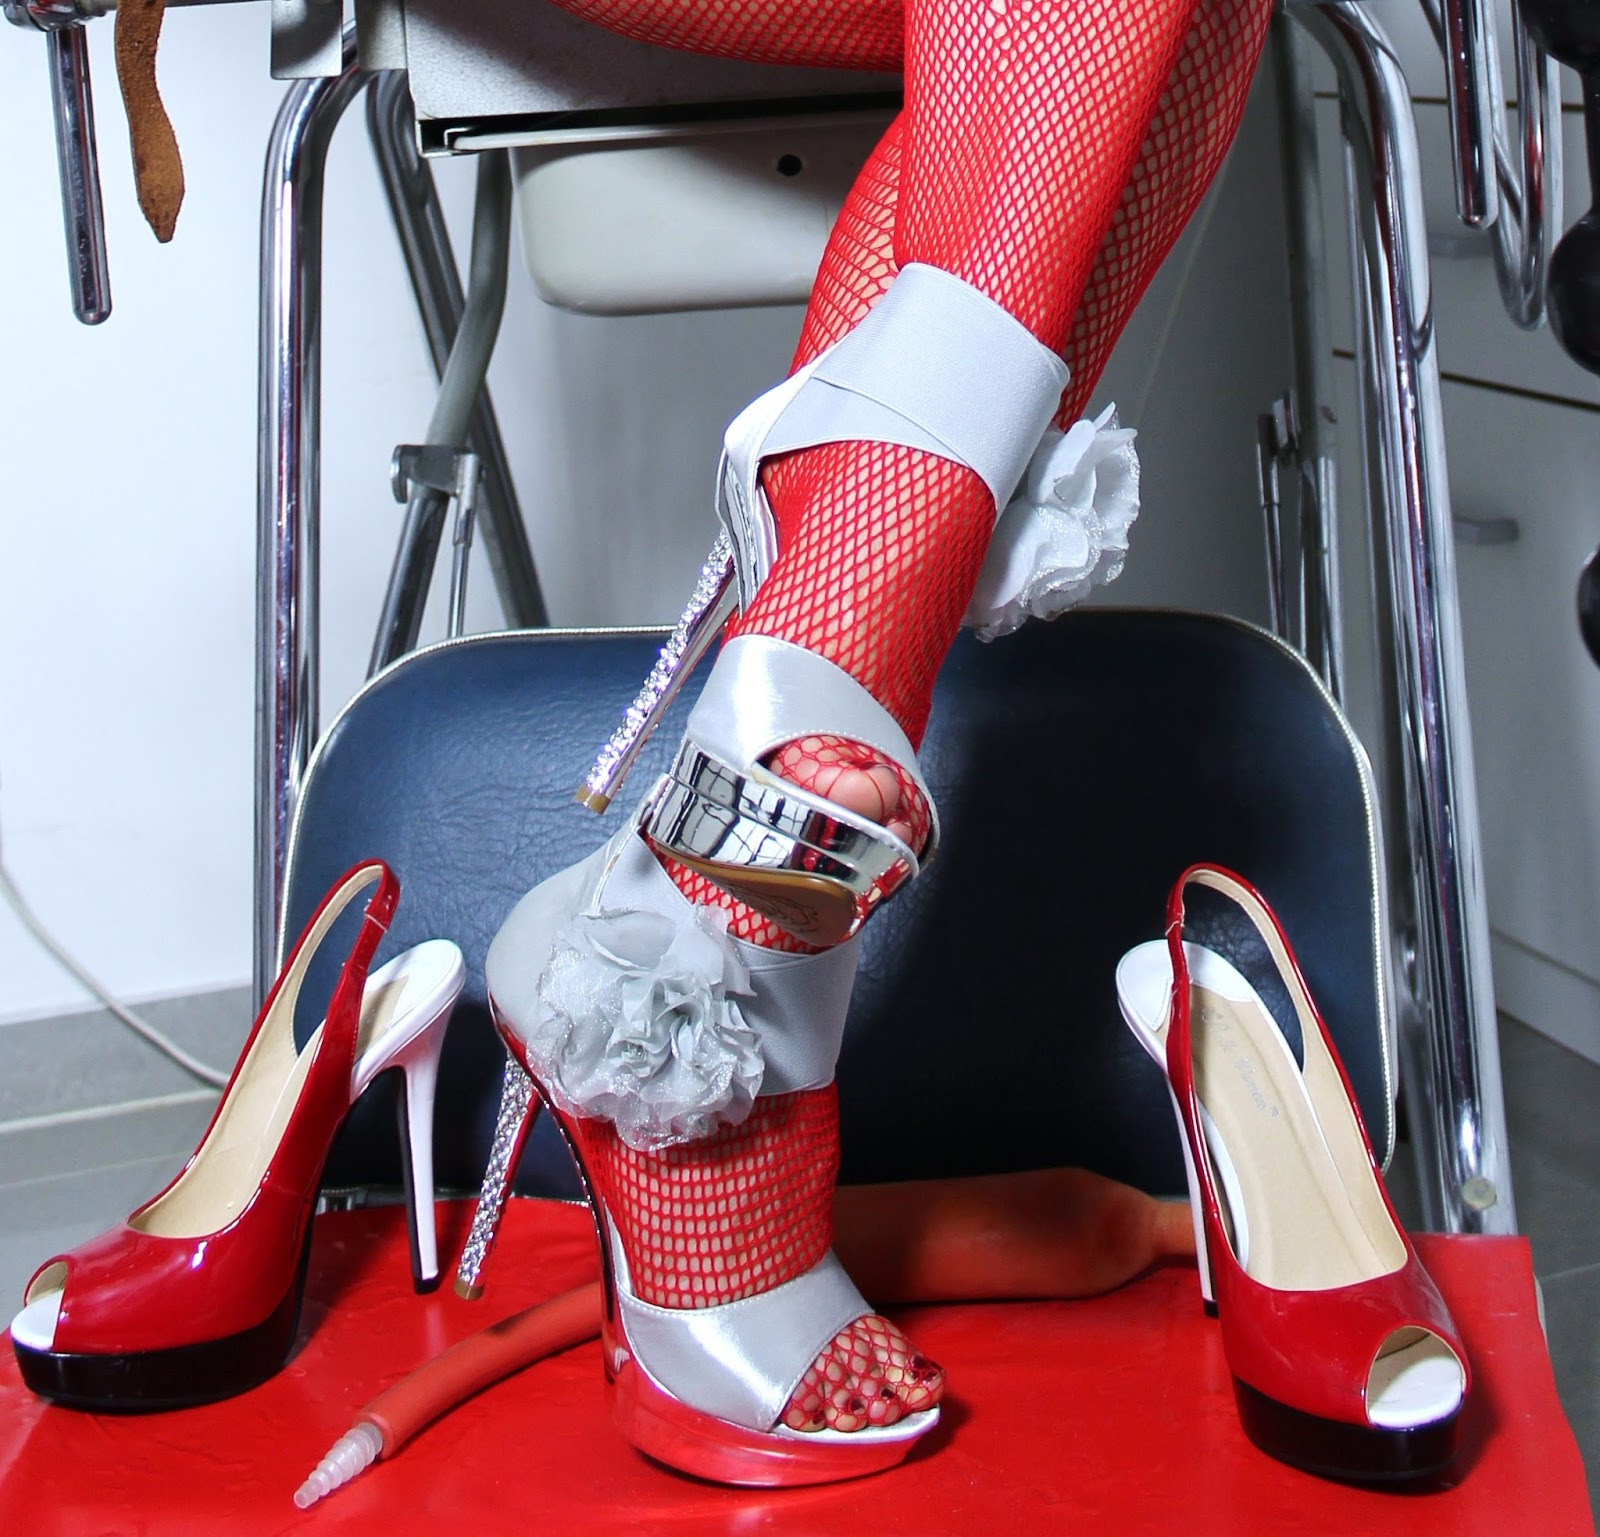 Lady Alina's High Heels in Klinikpraxis